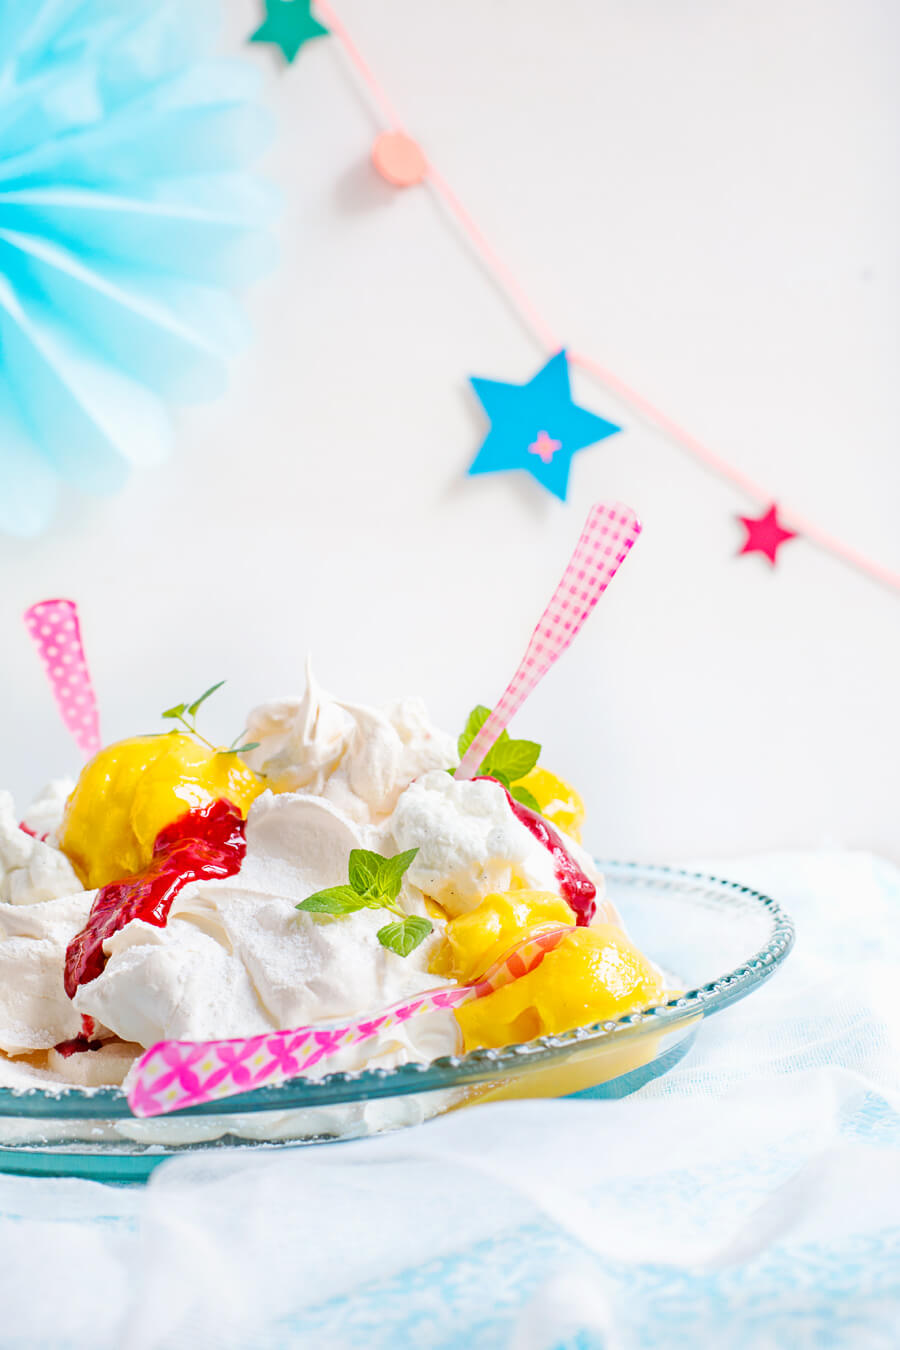 Pavlova-Mangosorbet with cream